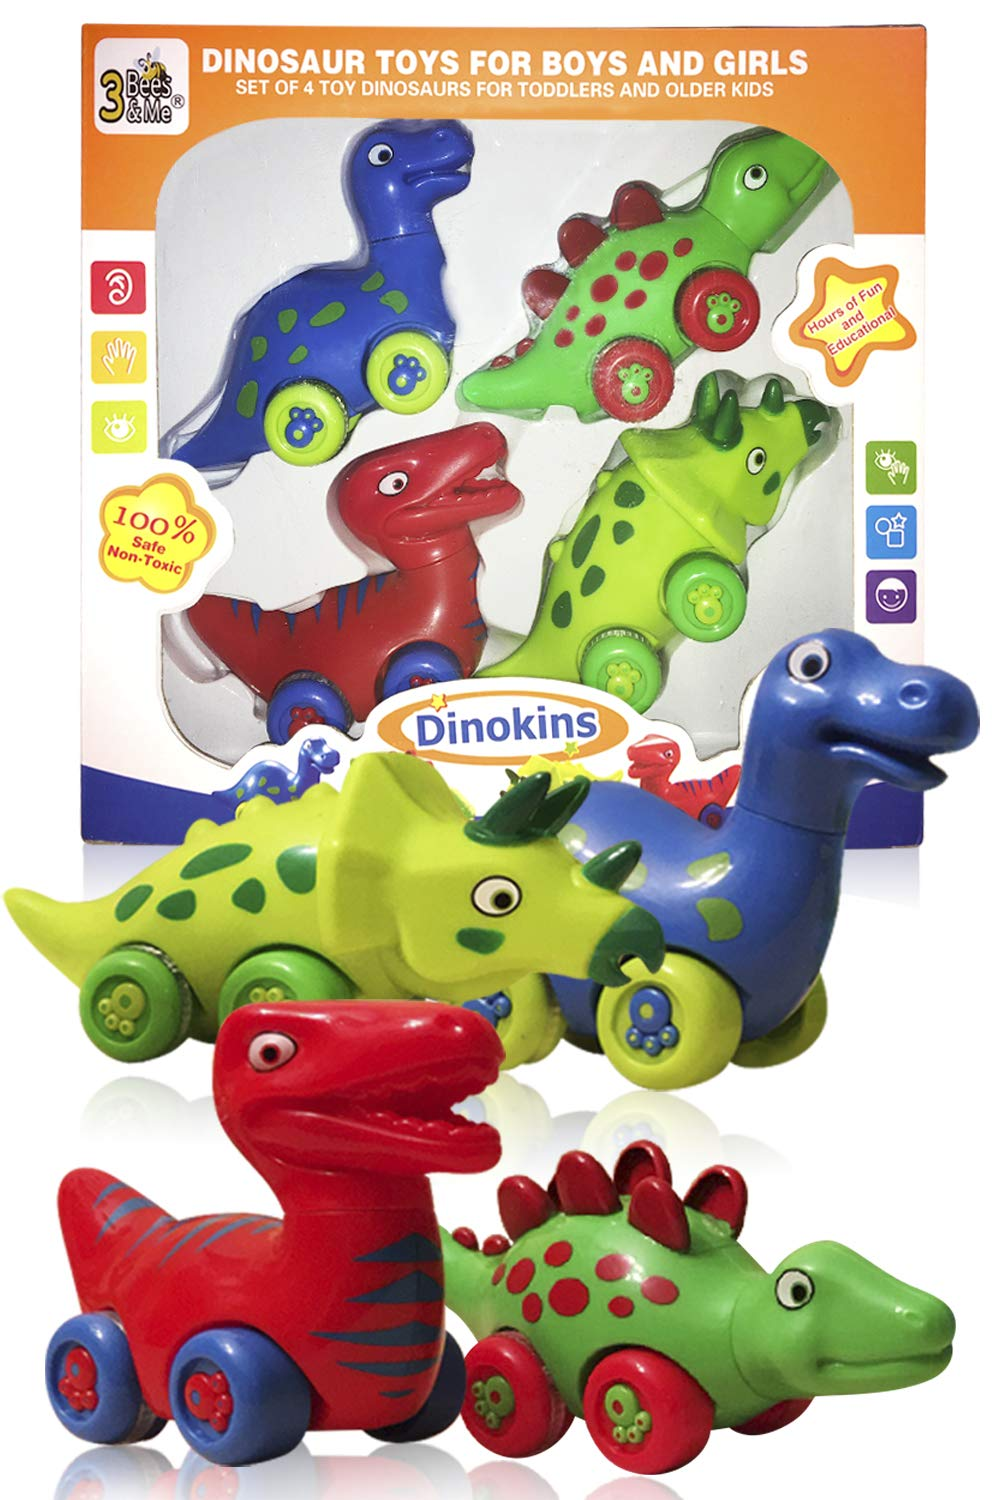 3 Bees & Me Dinosaur Toys for Boys and Girls - Set of 4 Toy Dinosaurs for Kids by 3 Bees & Me